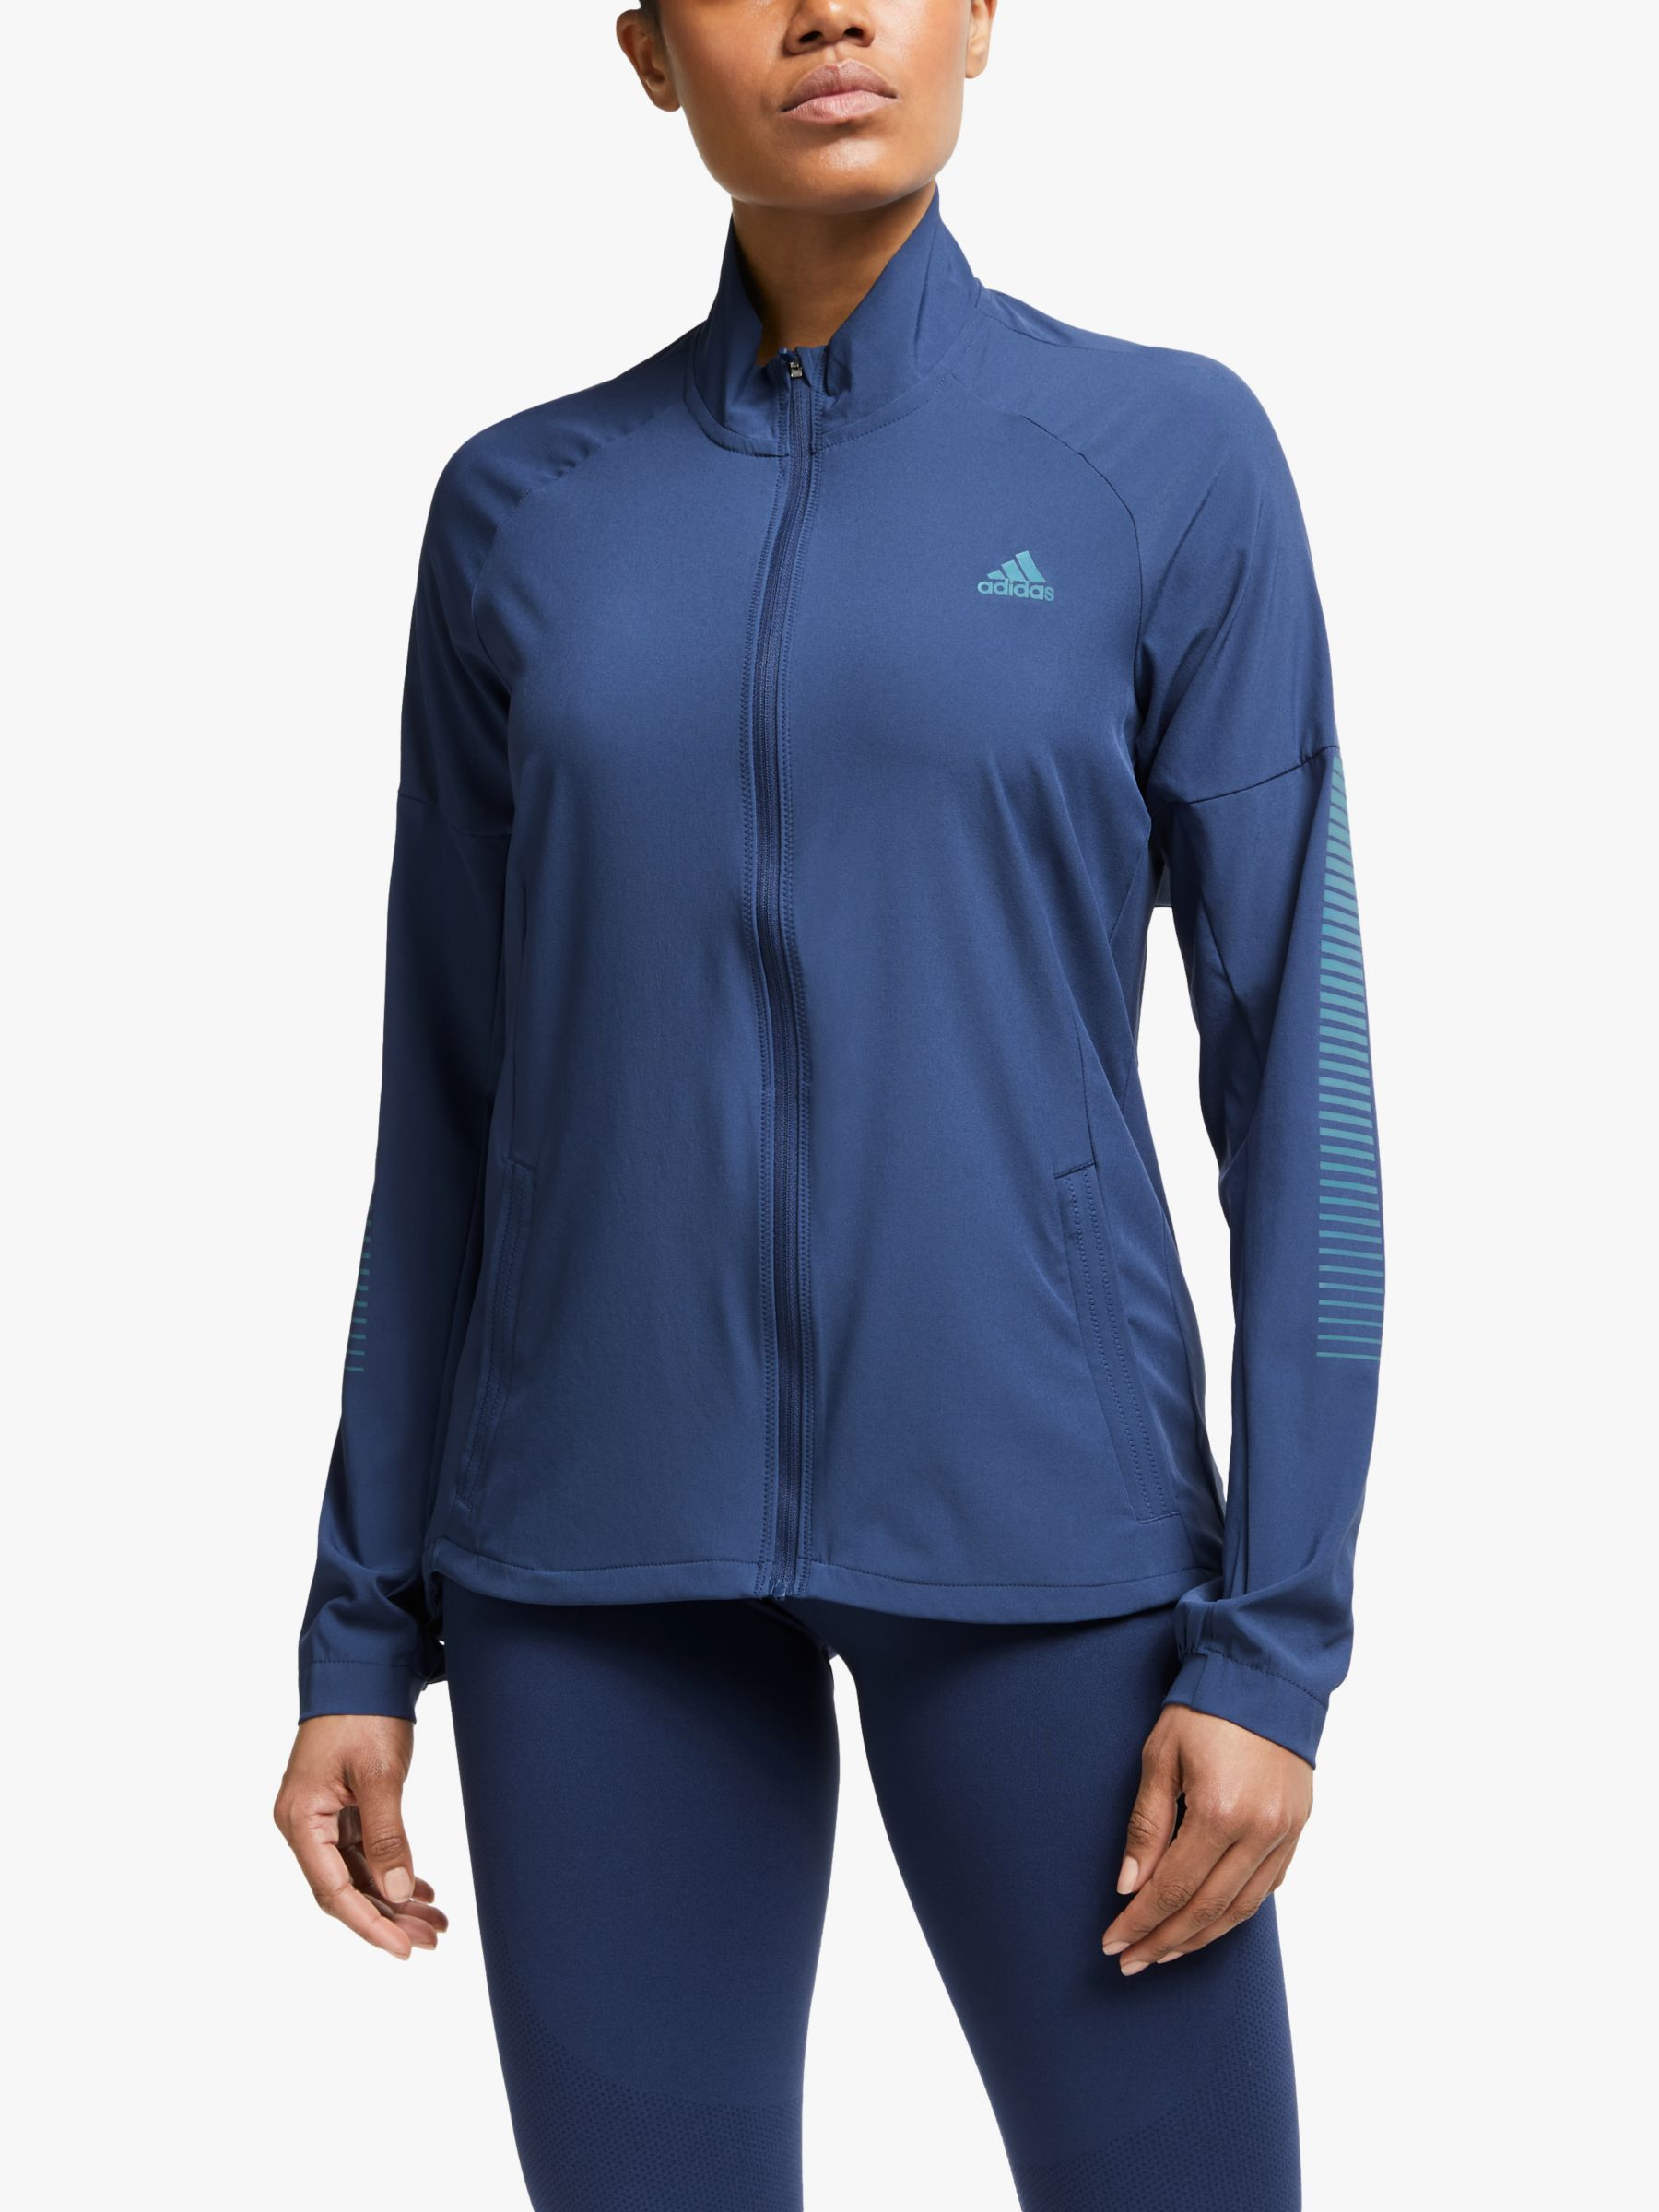 Adidas adidas Rise Up N Run Women's Running Jacket